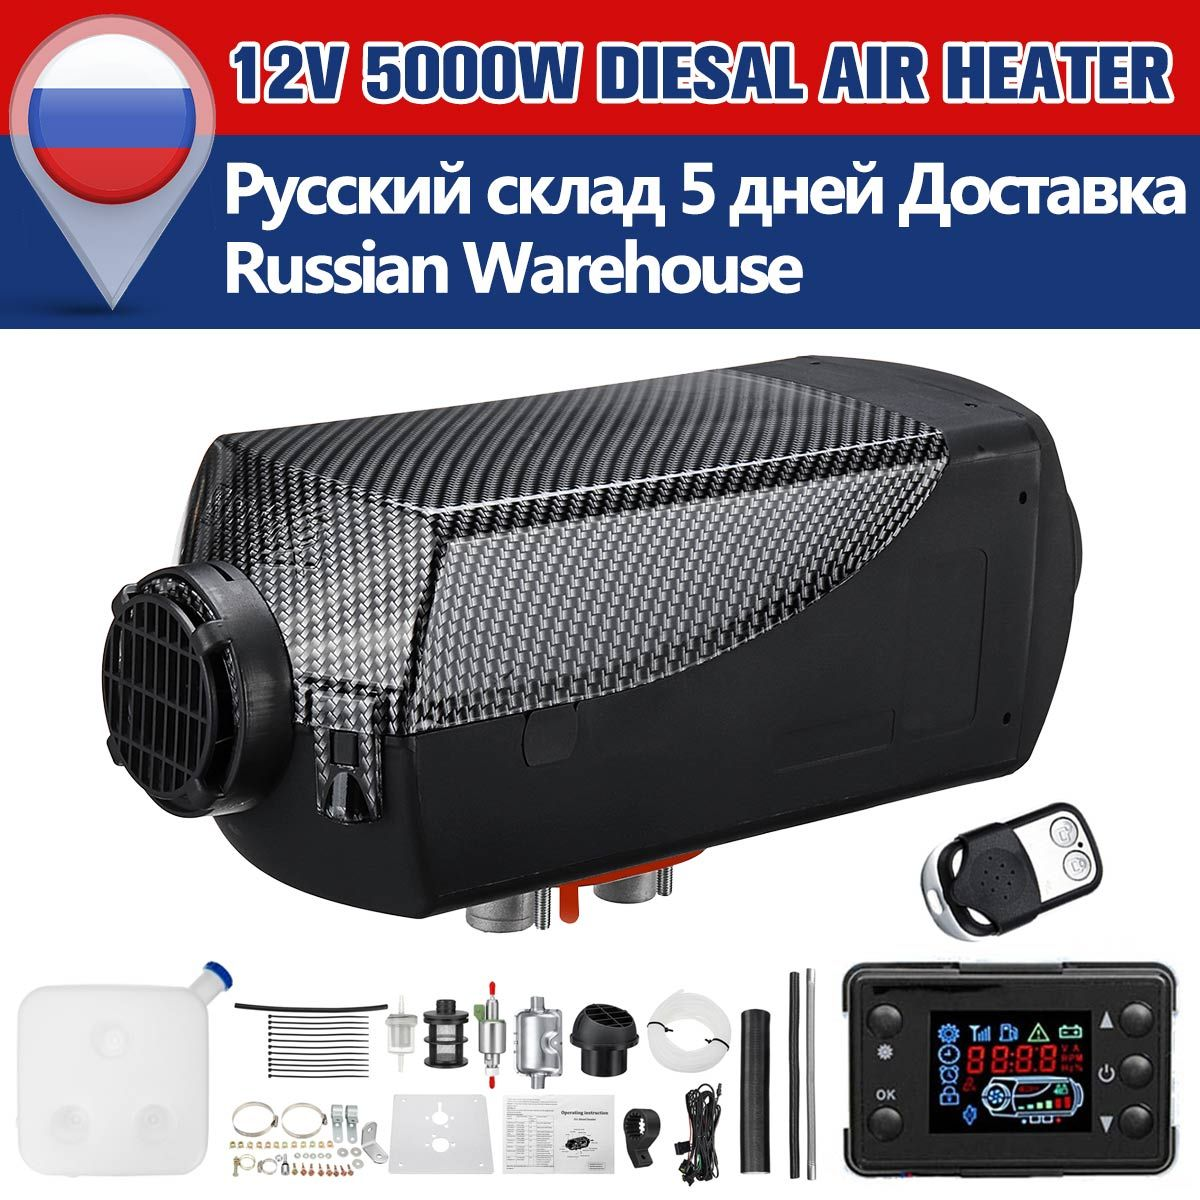 Diesel Air Heater 5KW 12V Planar LCD For Car Trucks Boats Motor-Homes Latest Kit Monitor for RV Motorhome Trailer With Remote